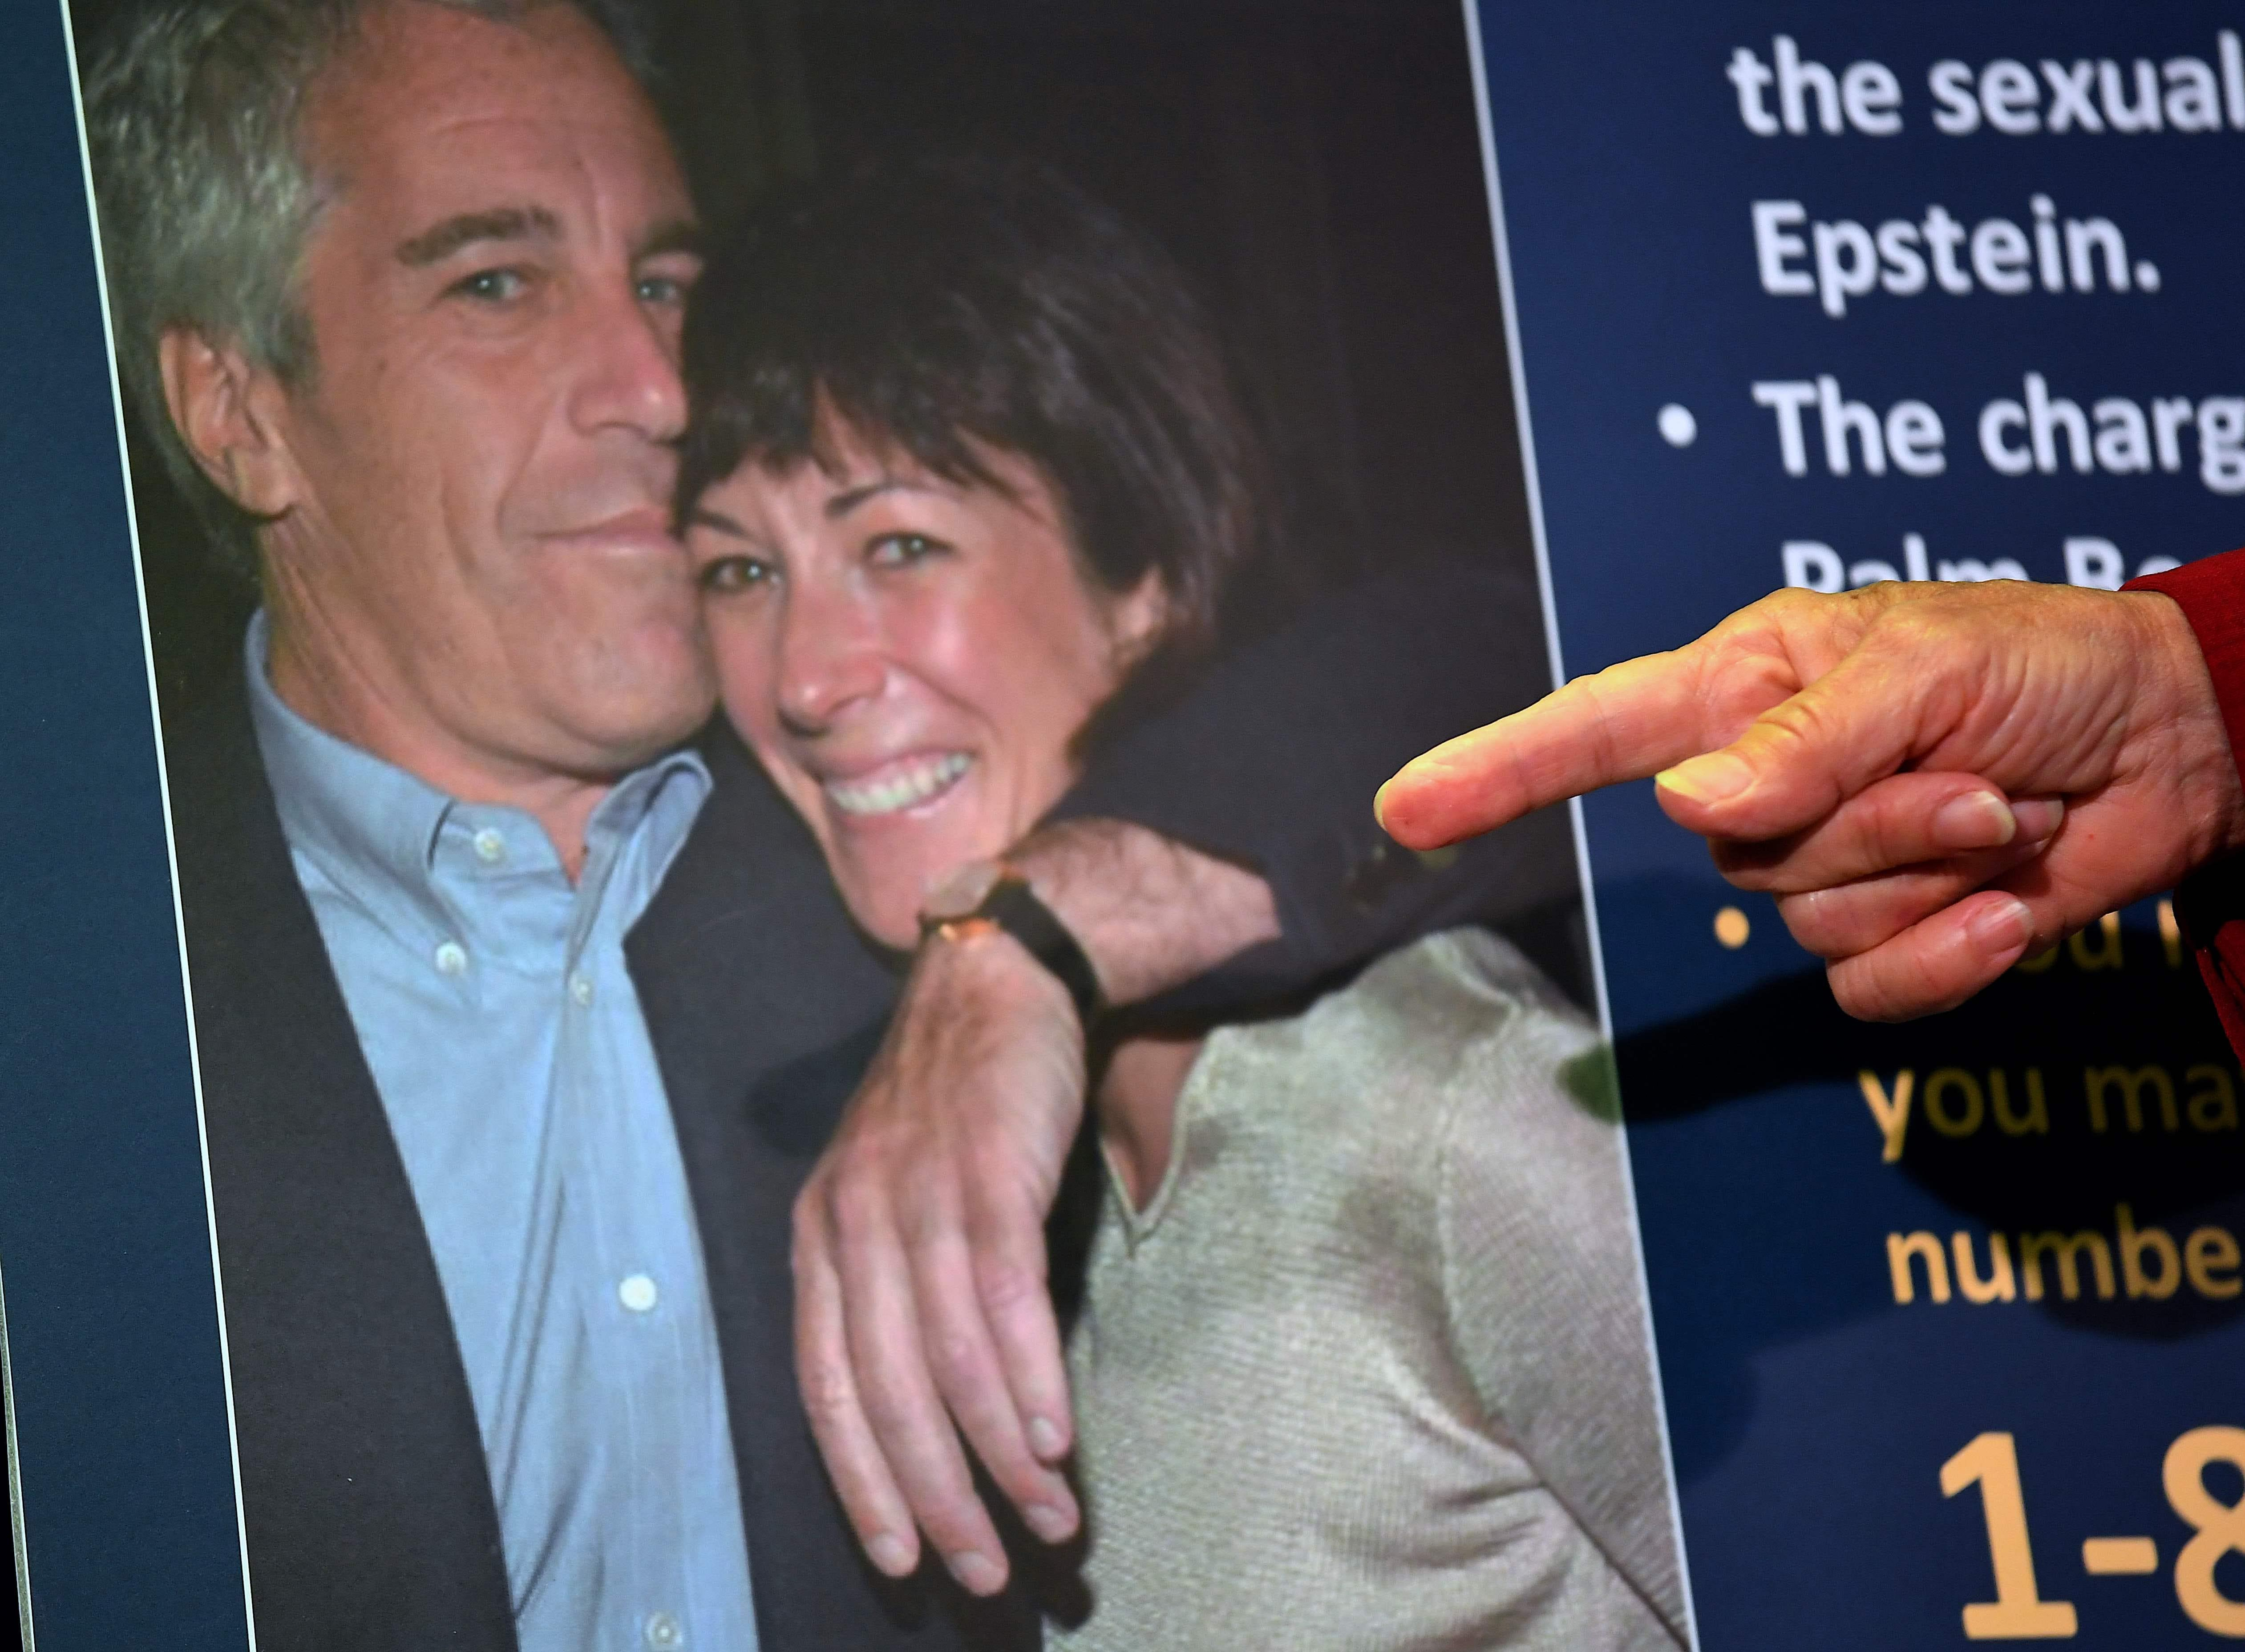 Jeffrey Epstein associate Ghislaine Maxwell complains about 'onerous' jail conditions